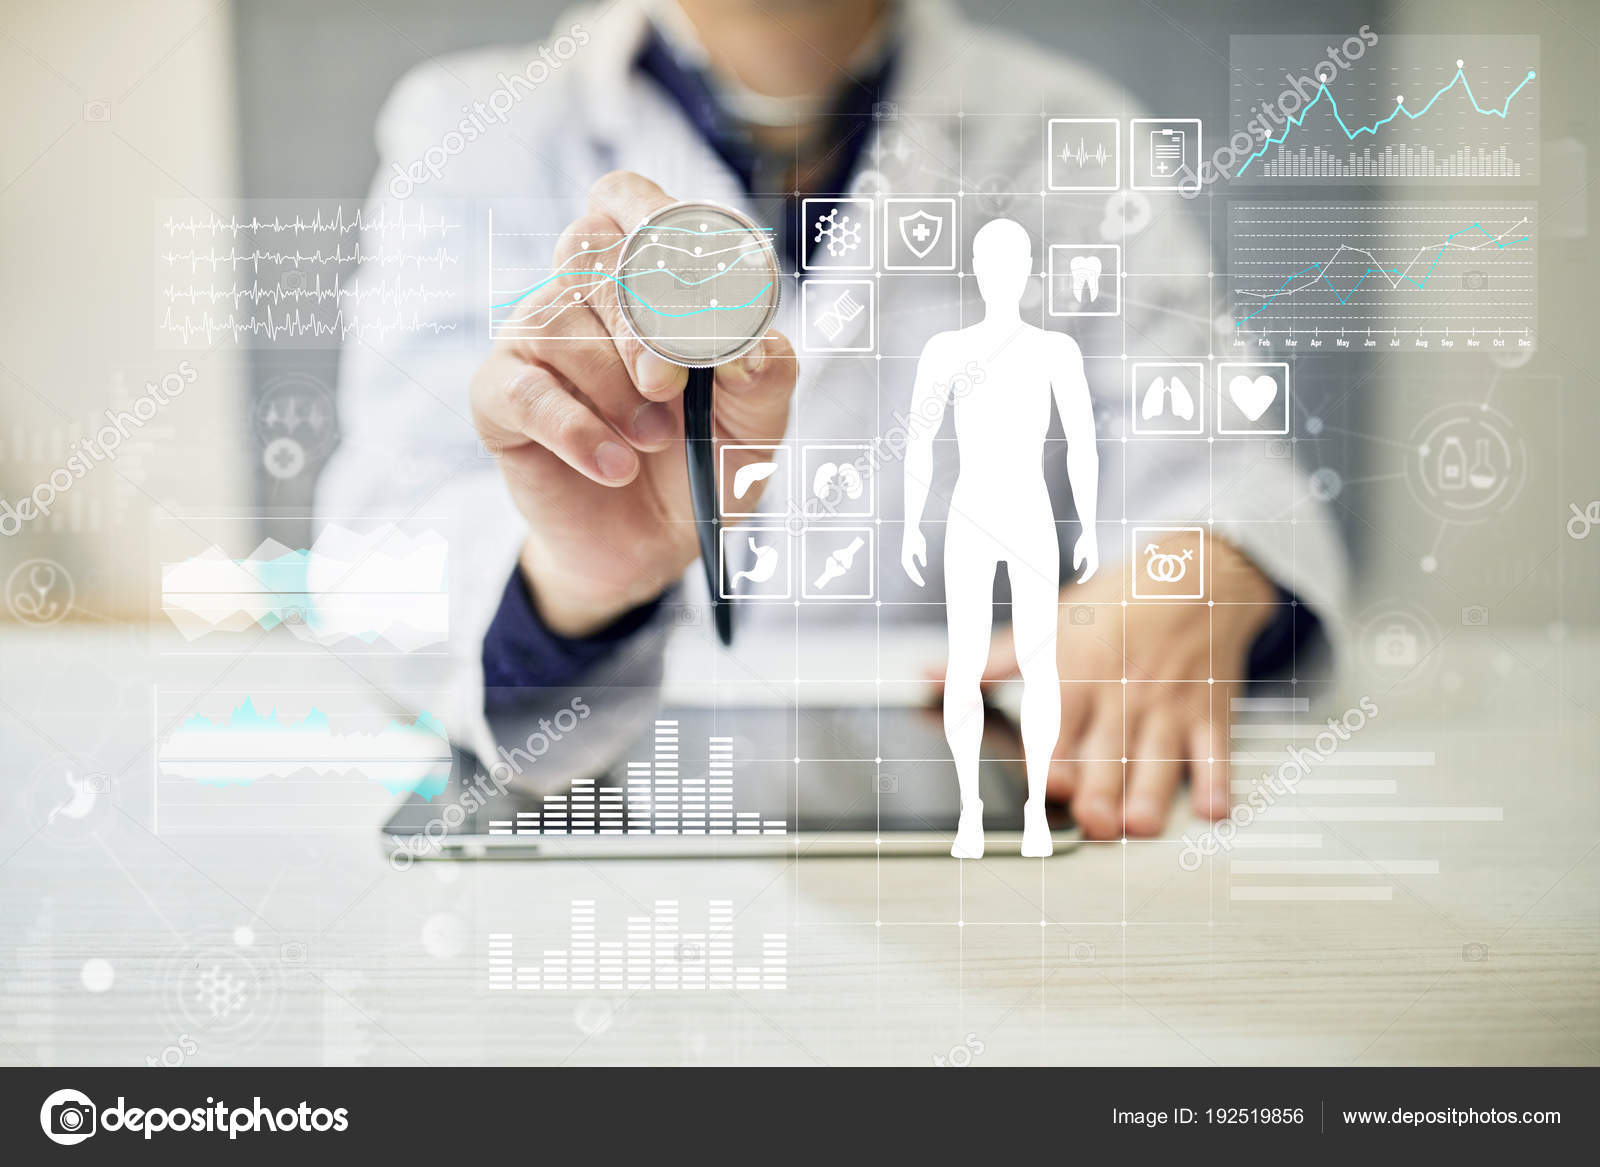 hight resolution of doctor using modern computer with medical record diagram on virtual screen concept health monitoring application photo by wrightstudio